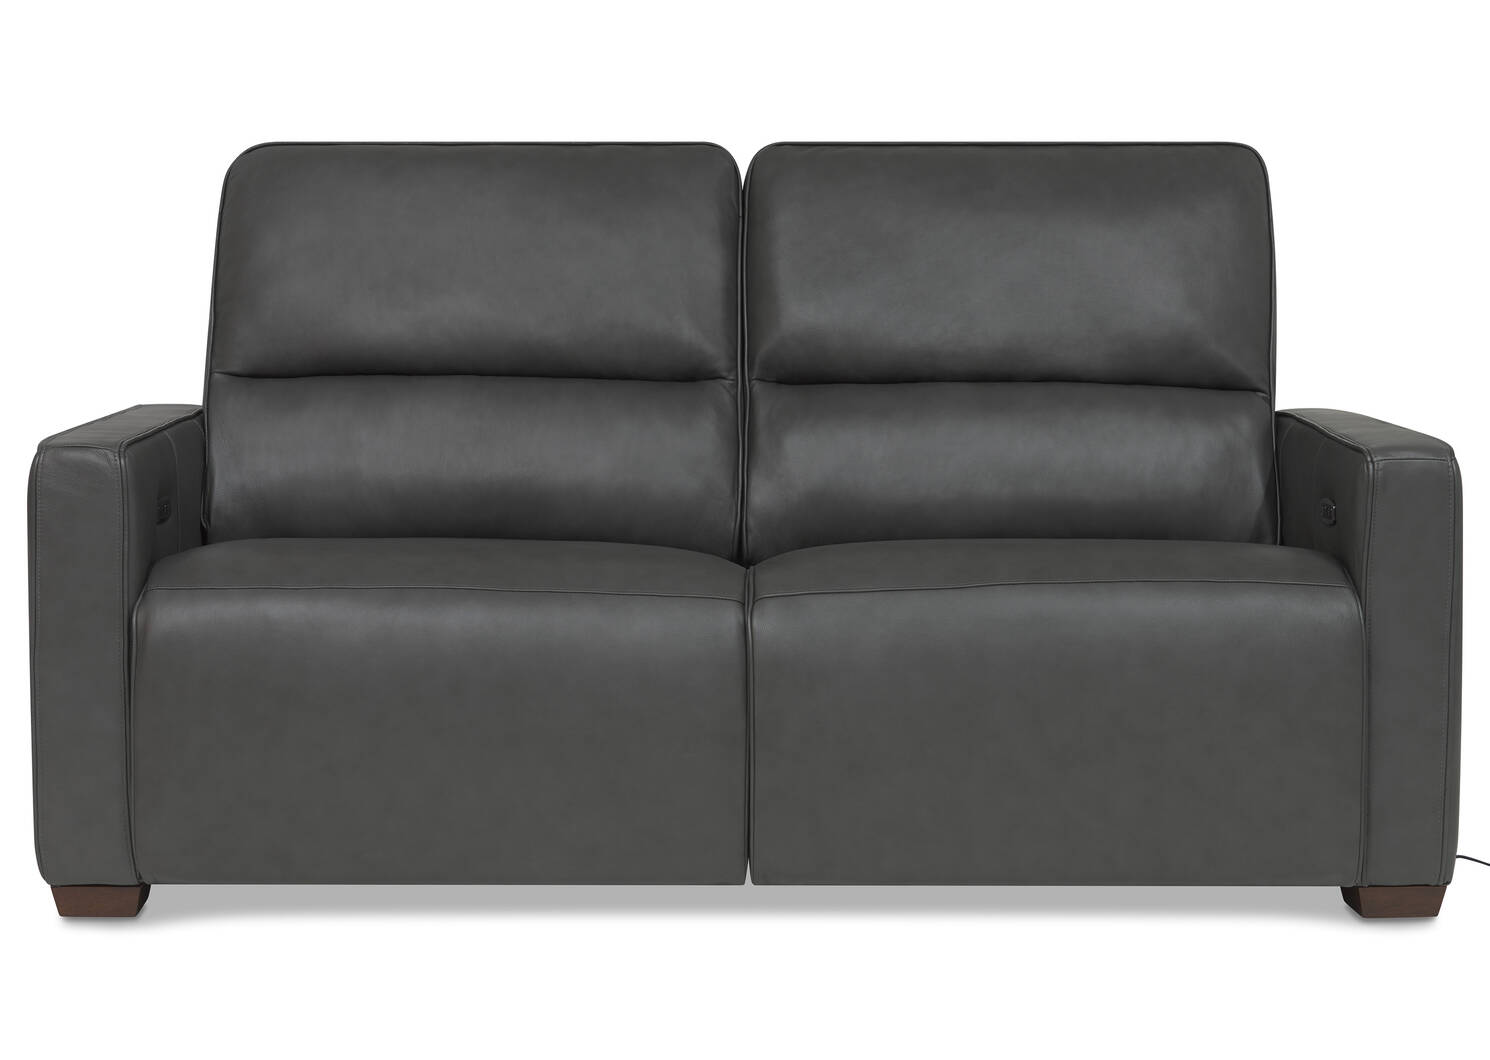 Reese Leather Reclining Sofa